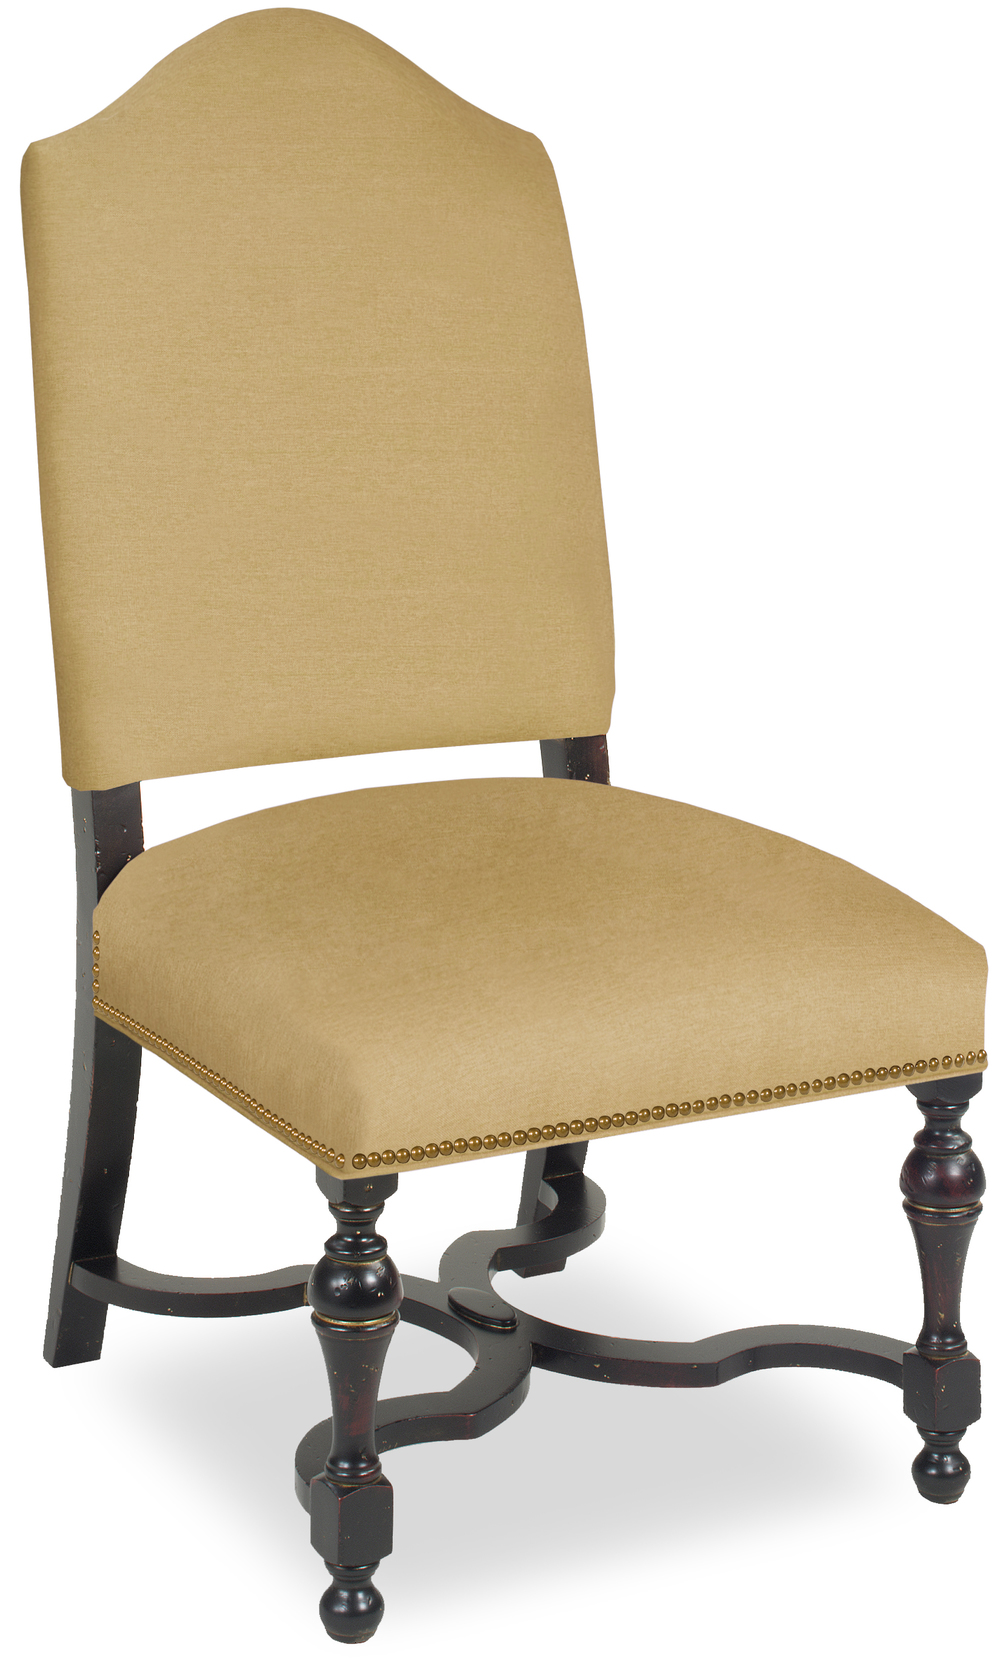 Parker Southern - Grayson Armless Chair